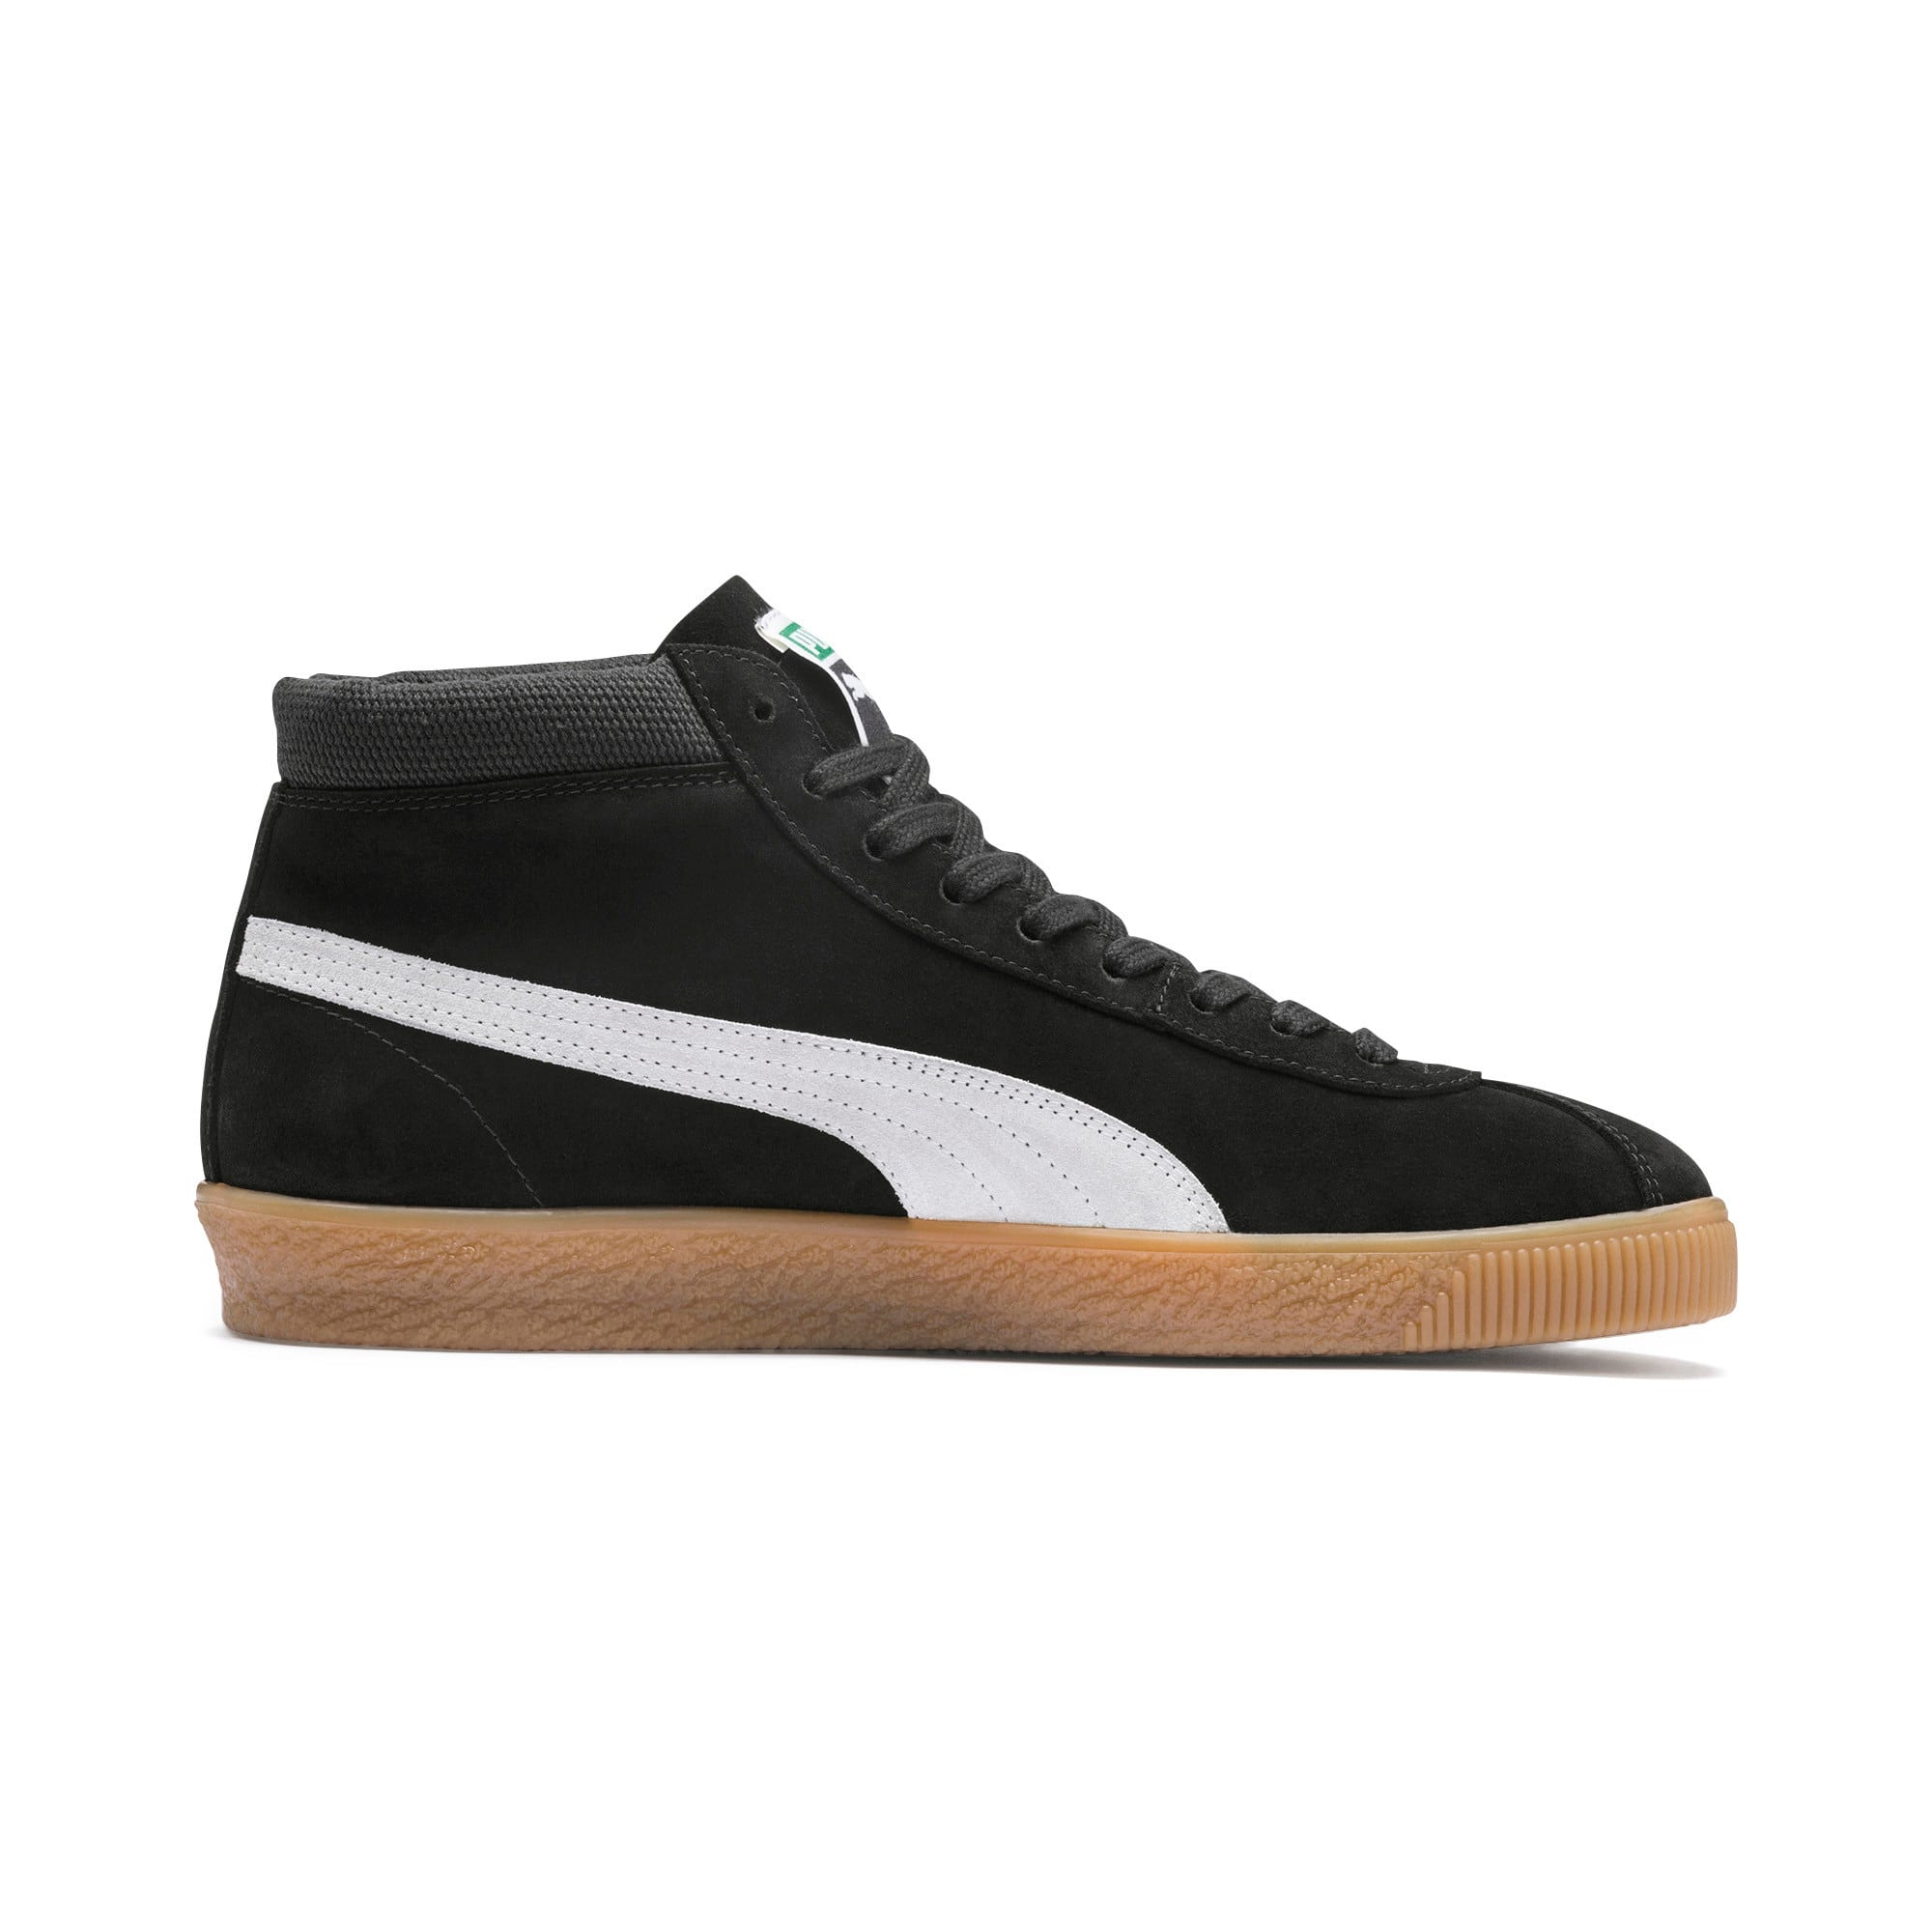 Thumbnail 6 of スウェード '68 ミッド スニーカー, Puma Black-Whisper White, medium-JPN